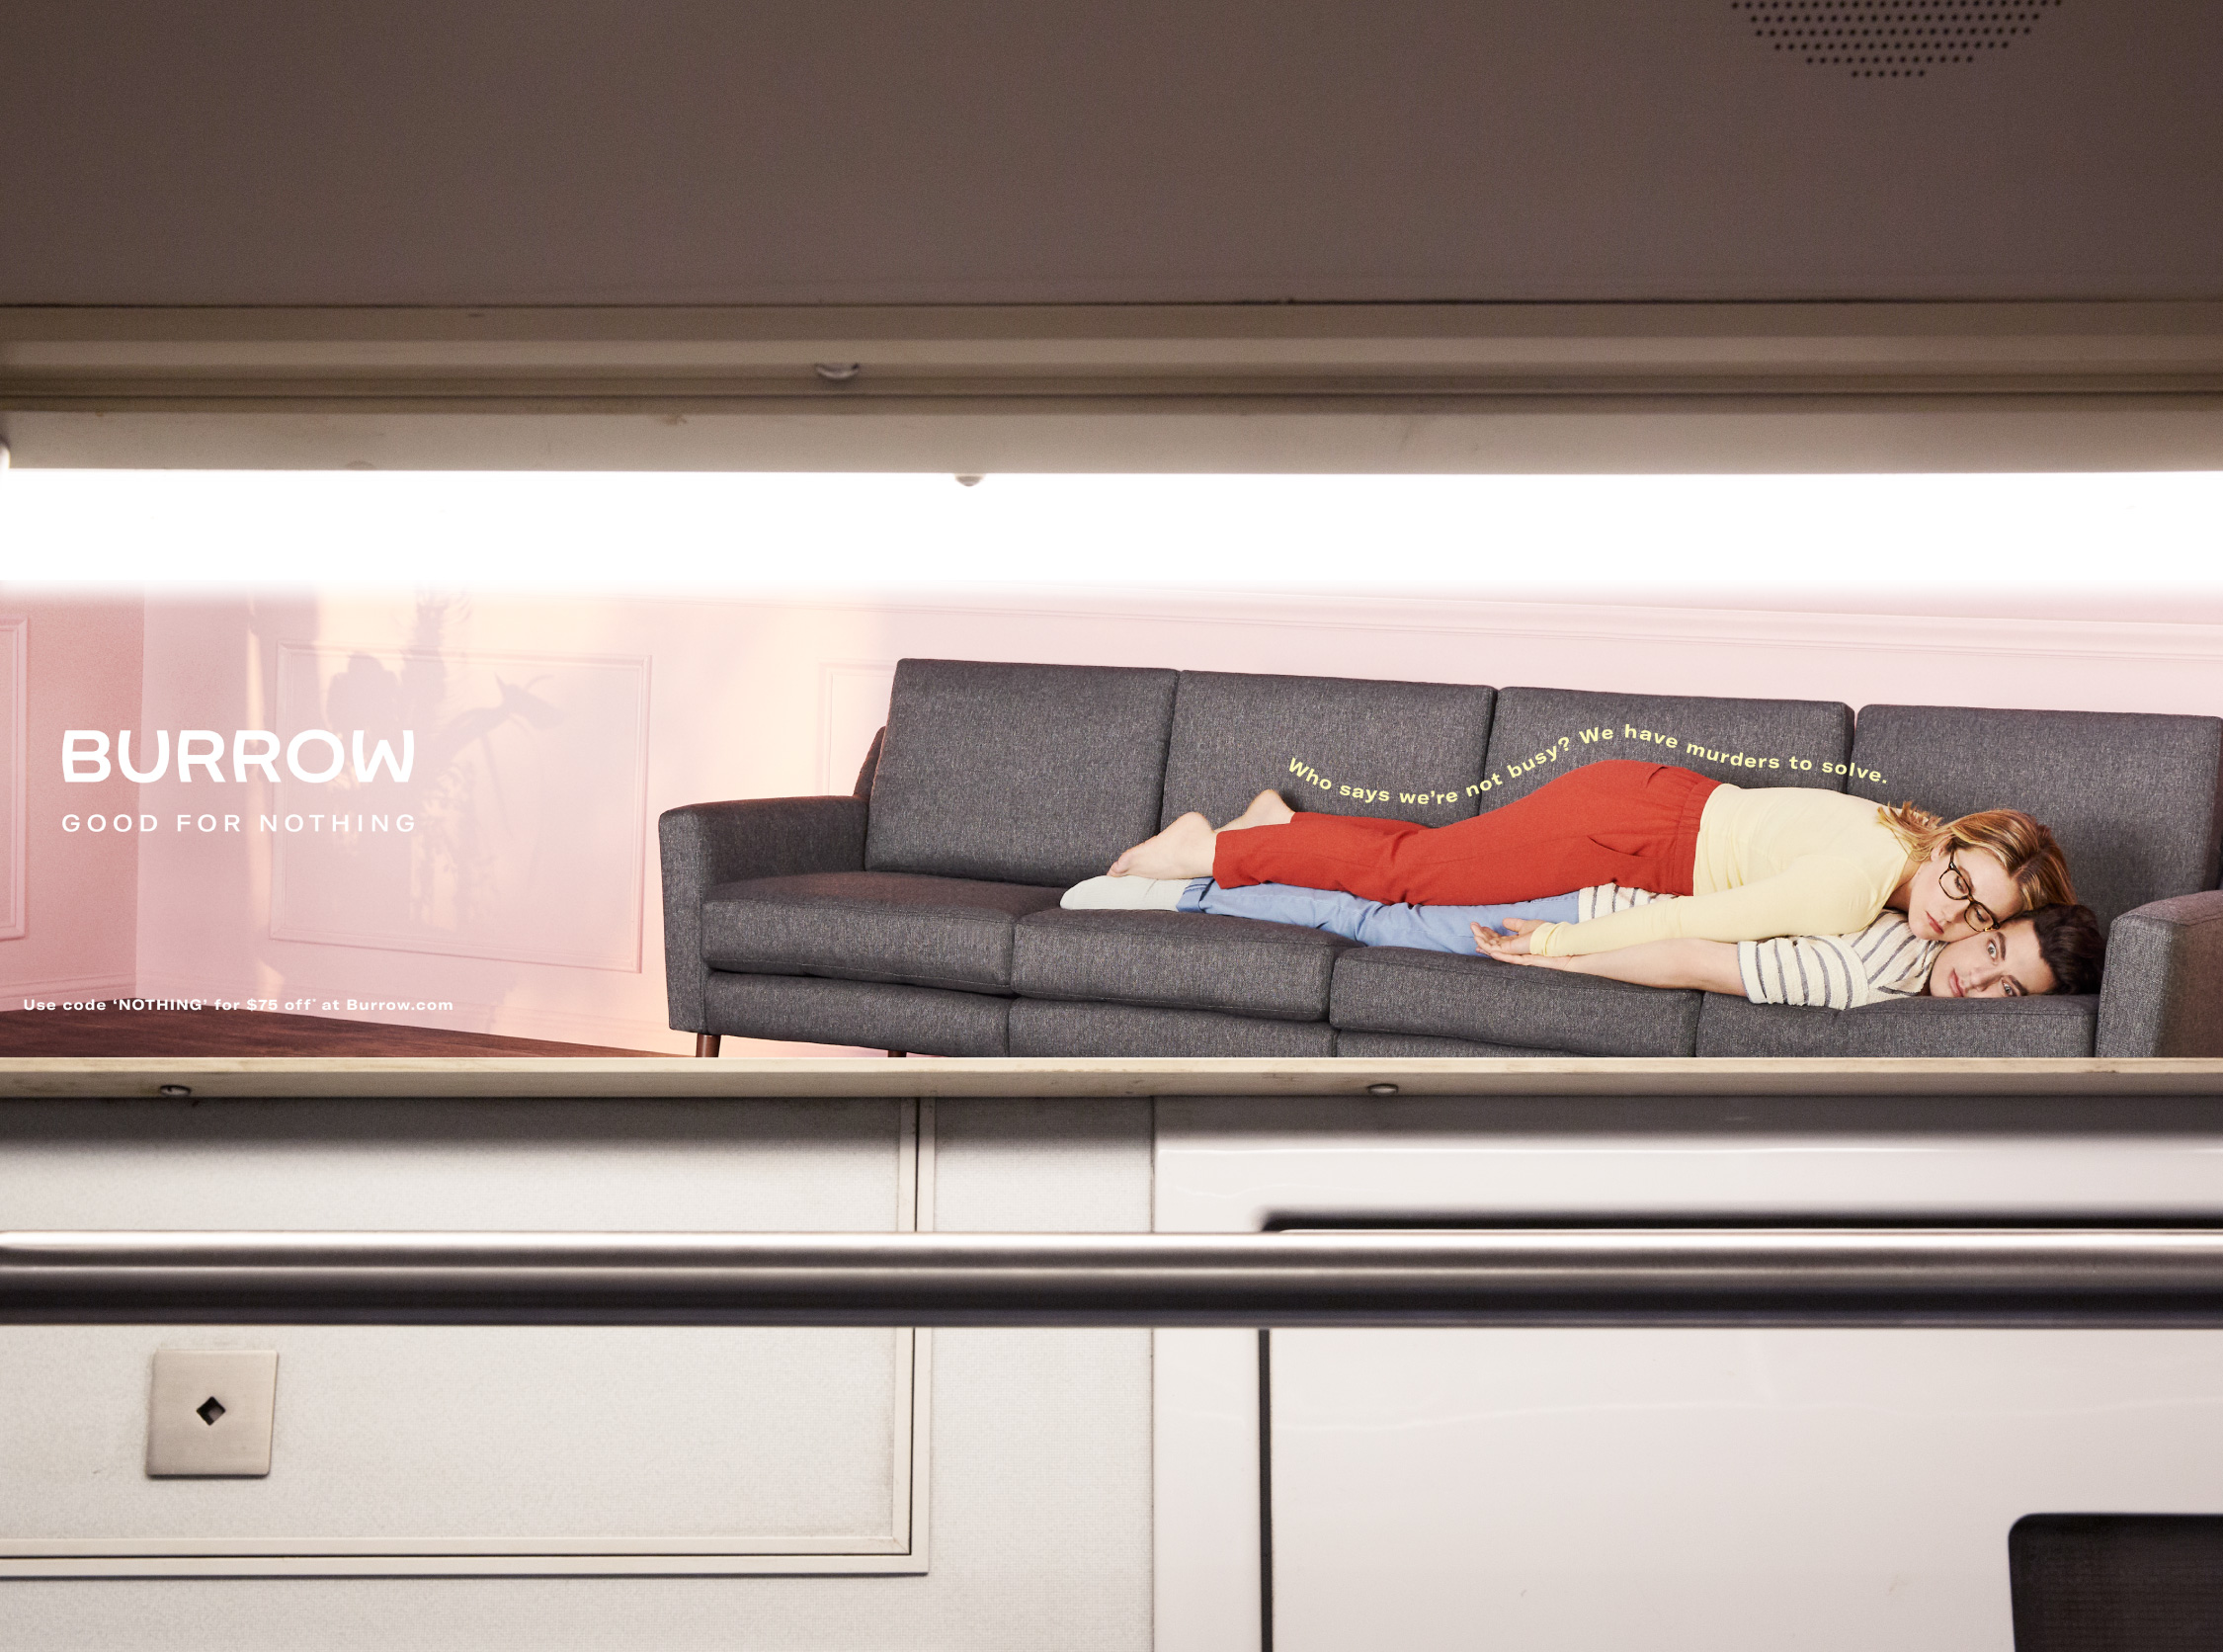 11-red-antler-burrow-good-for-nothing-campaign-subway-ads.jpg